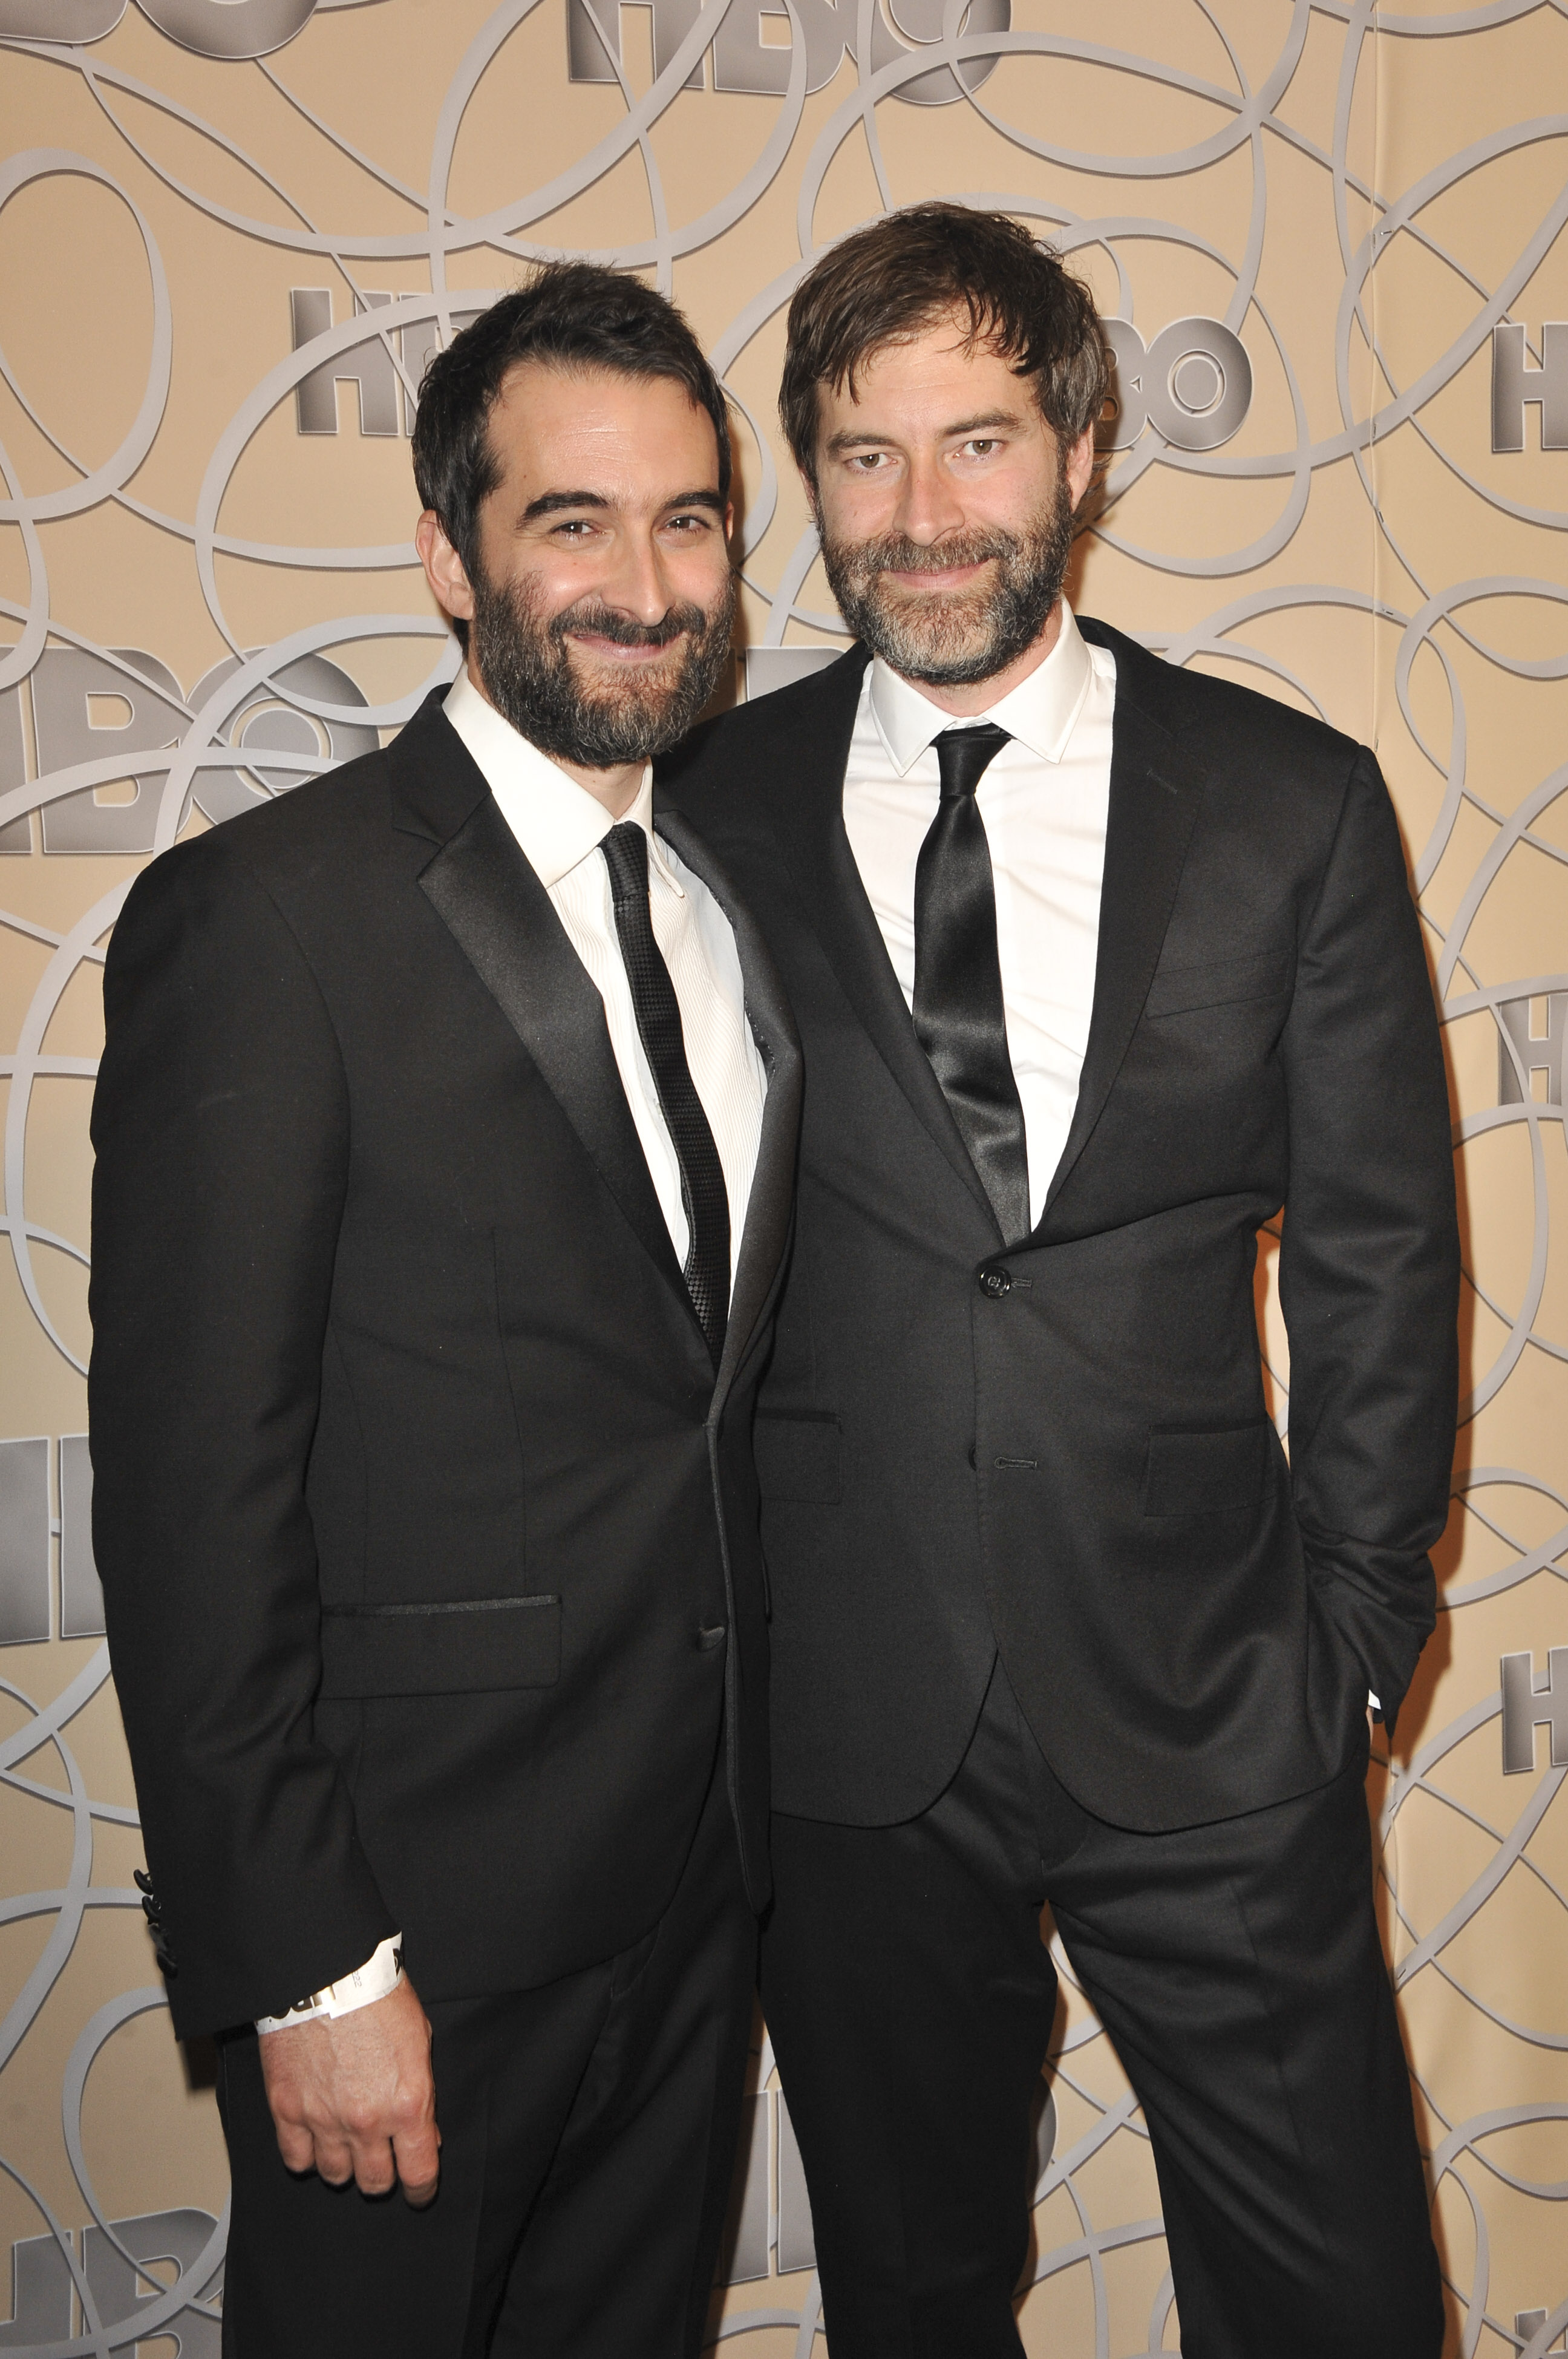 Smithsonian Associates is hosting an exclusive interview with producers, writers, directors and actors Mark Duplass and Jay Duplass on Thursday May 10. (Image: Apega/WENN.com)